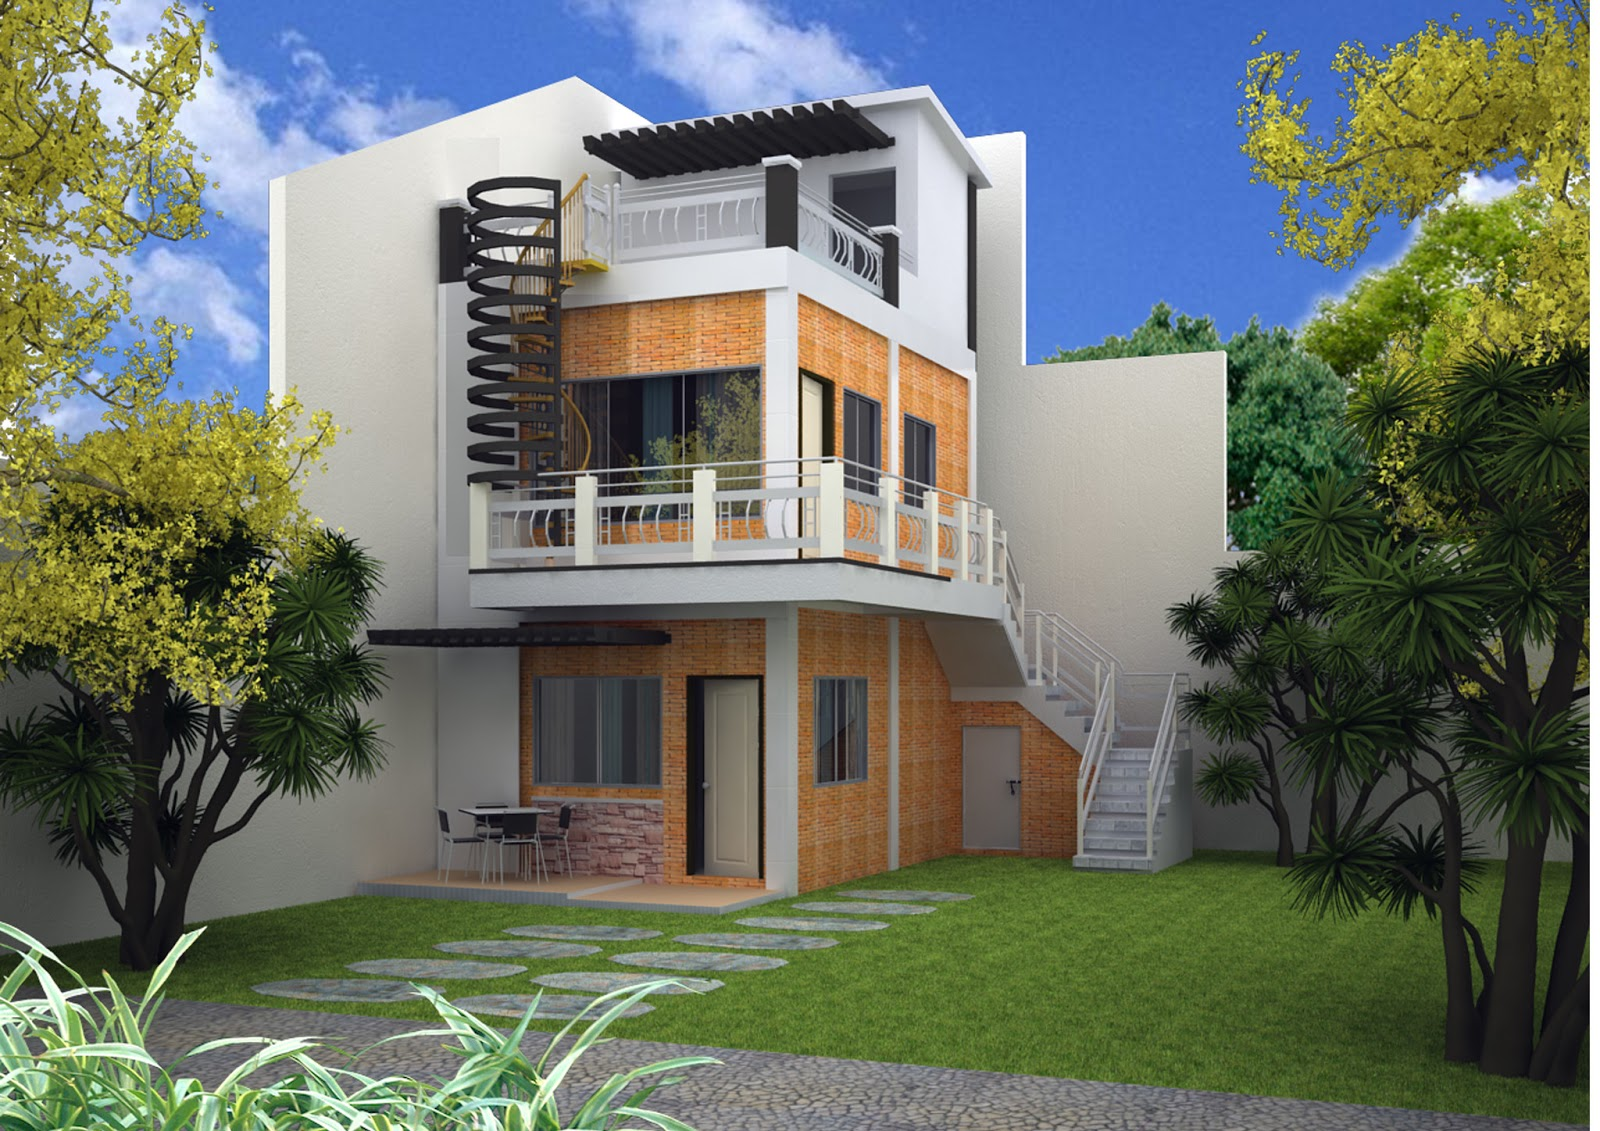 Architectural designs 3 storey house design for Modern house plans 3 story